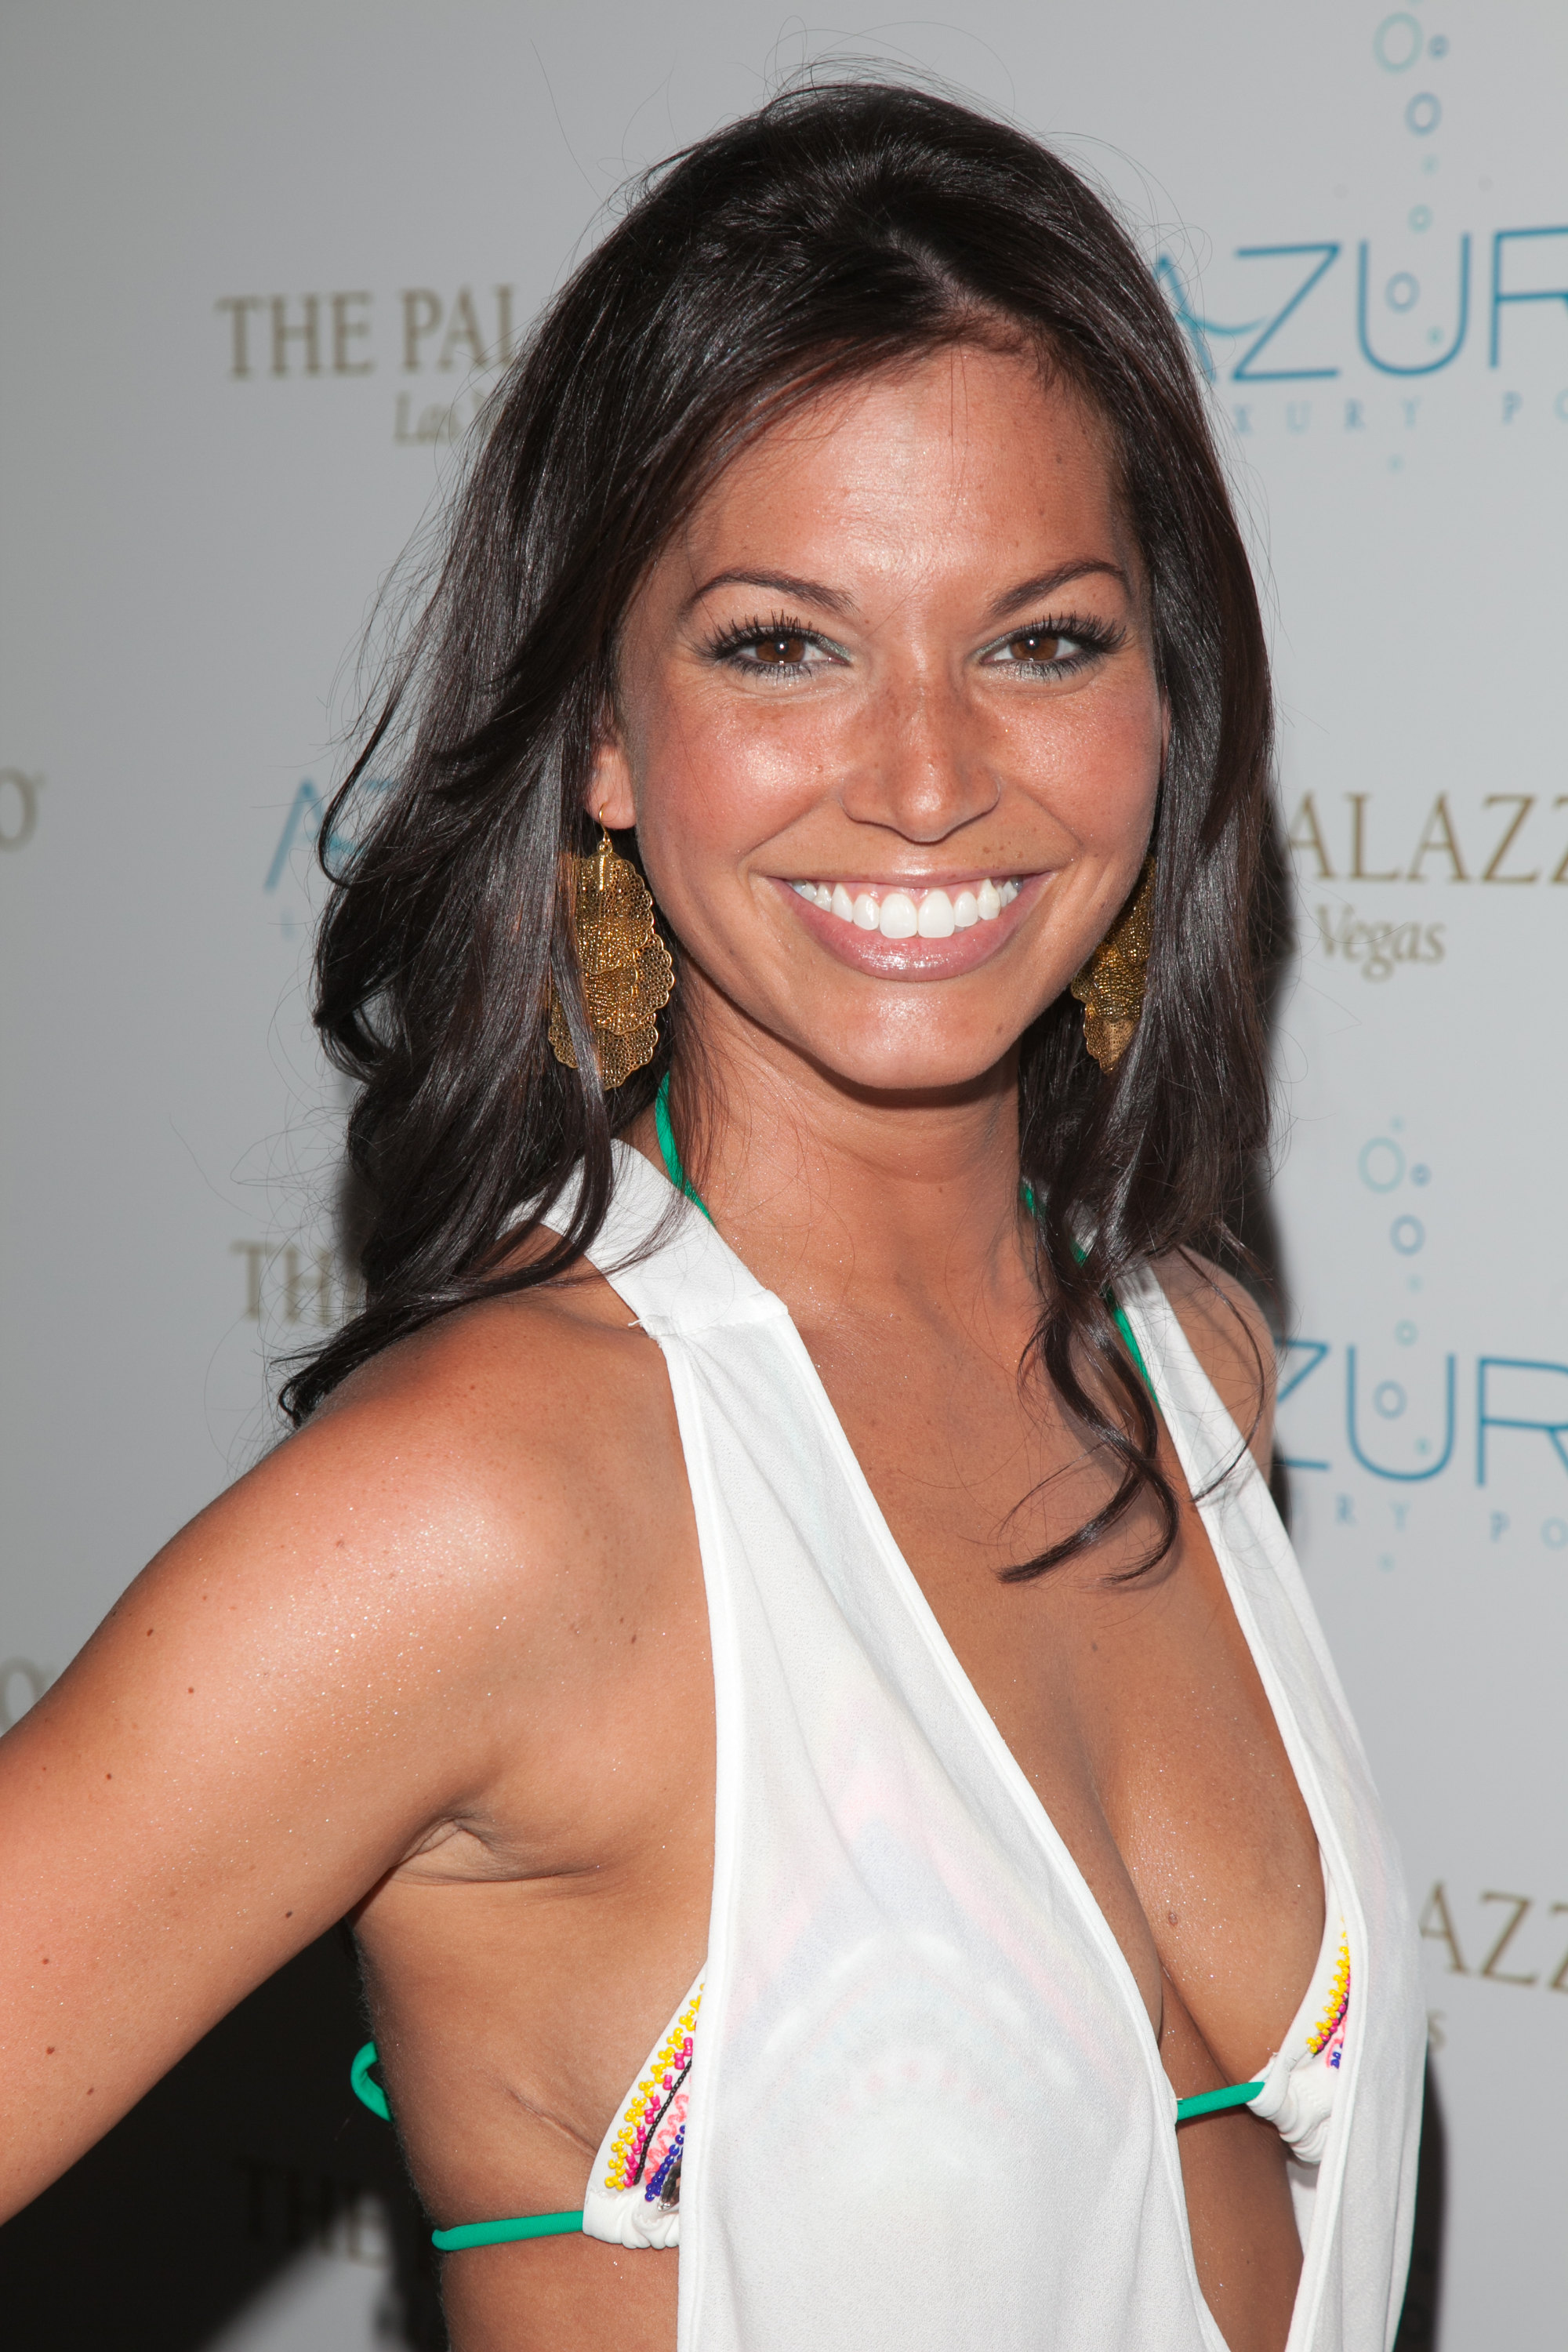 For the Melissa rycroft naked pics think